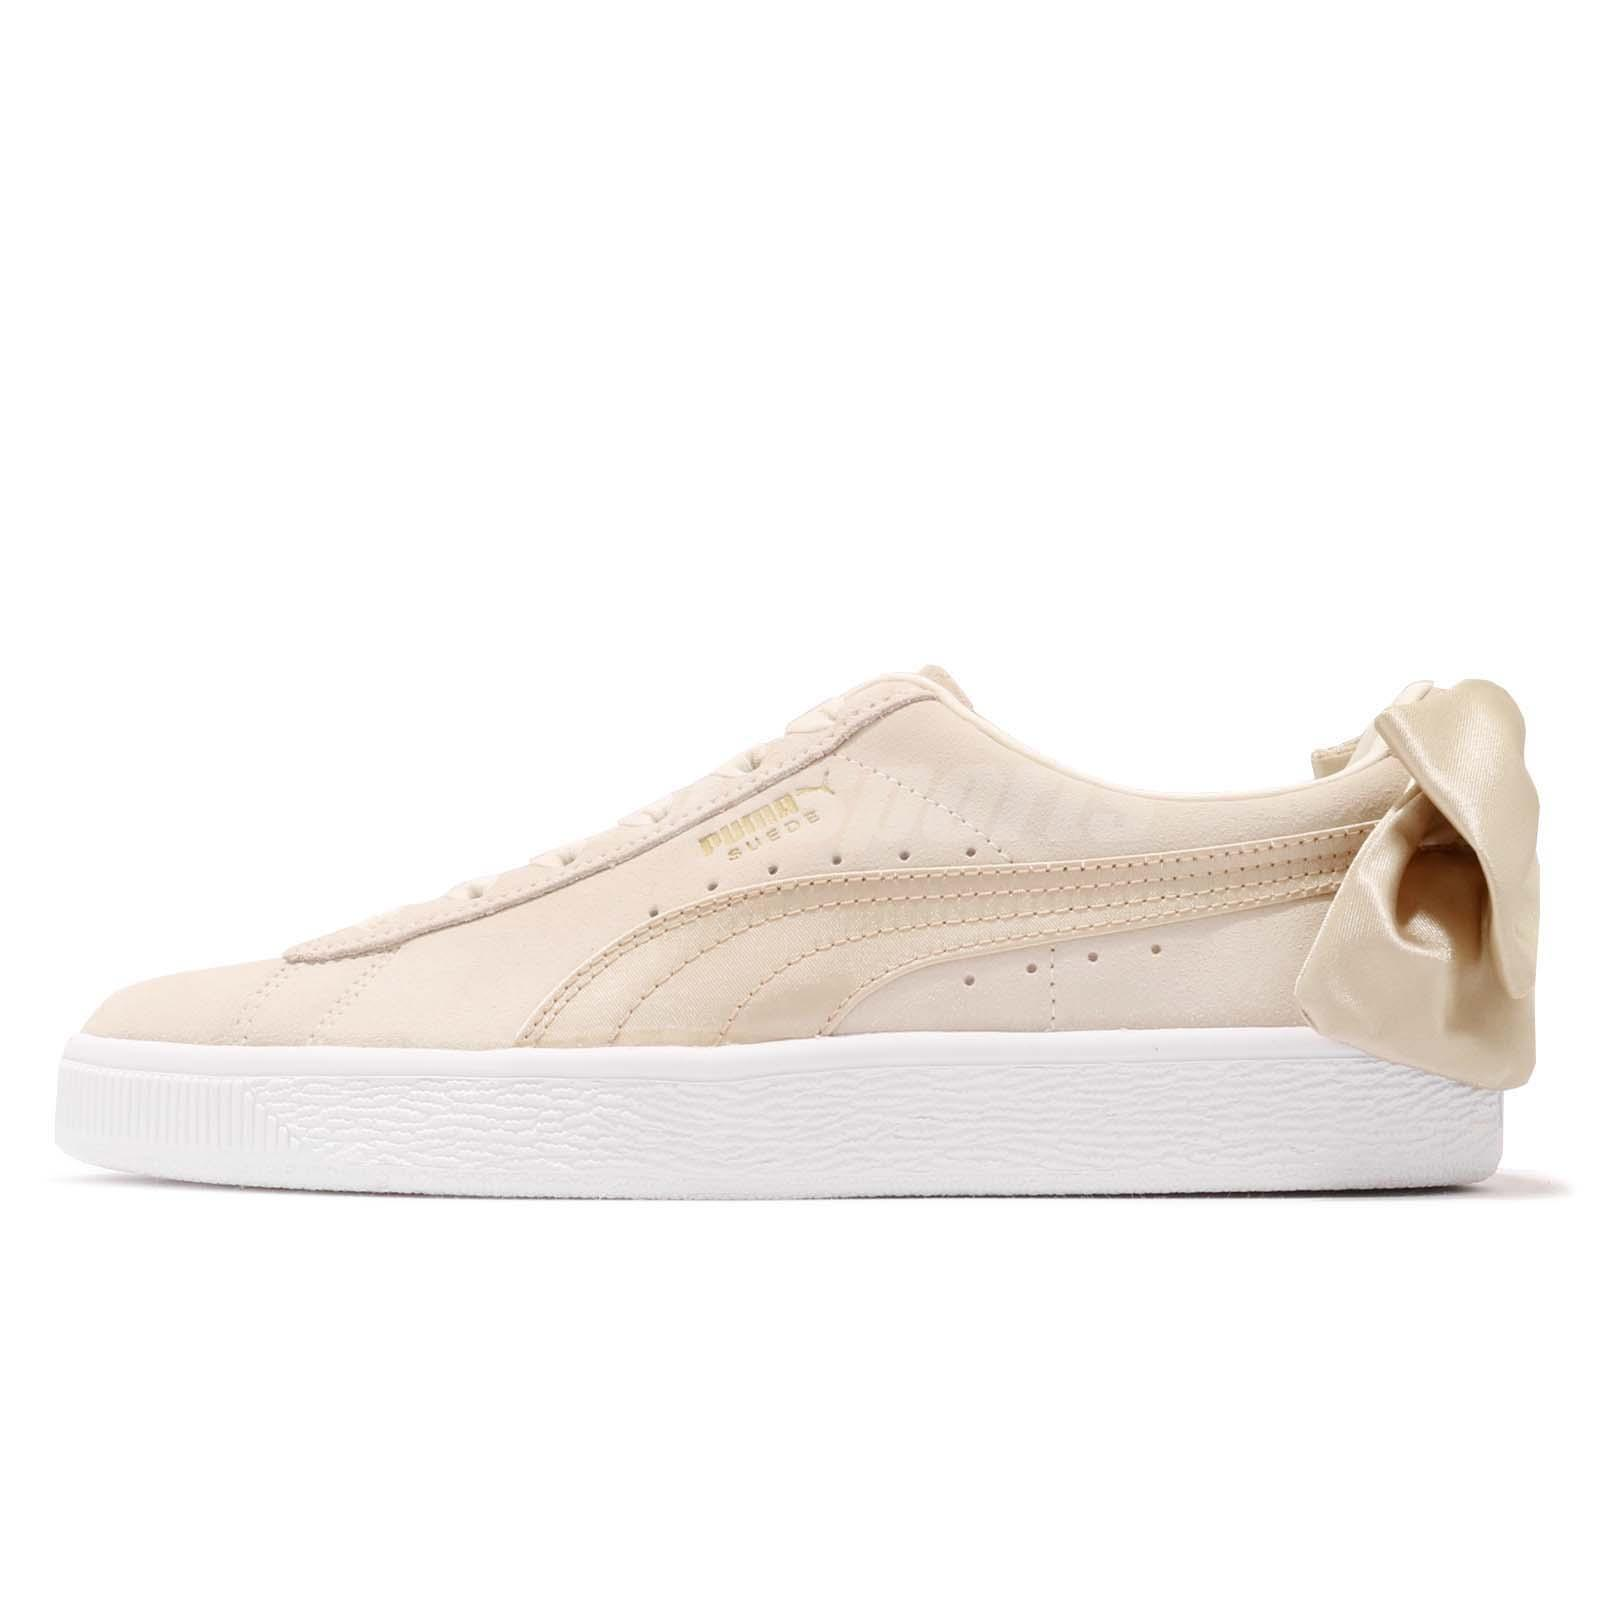 Puma Suede Bow Varsity Wns Beige Gold Womens Casual Shoes Sneakers 367732-03 3ead730fb